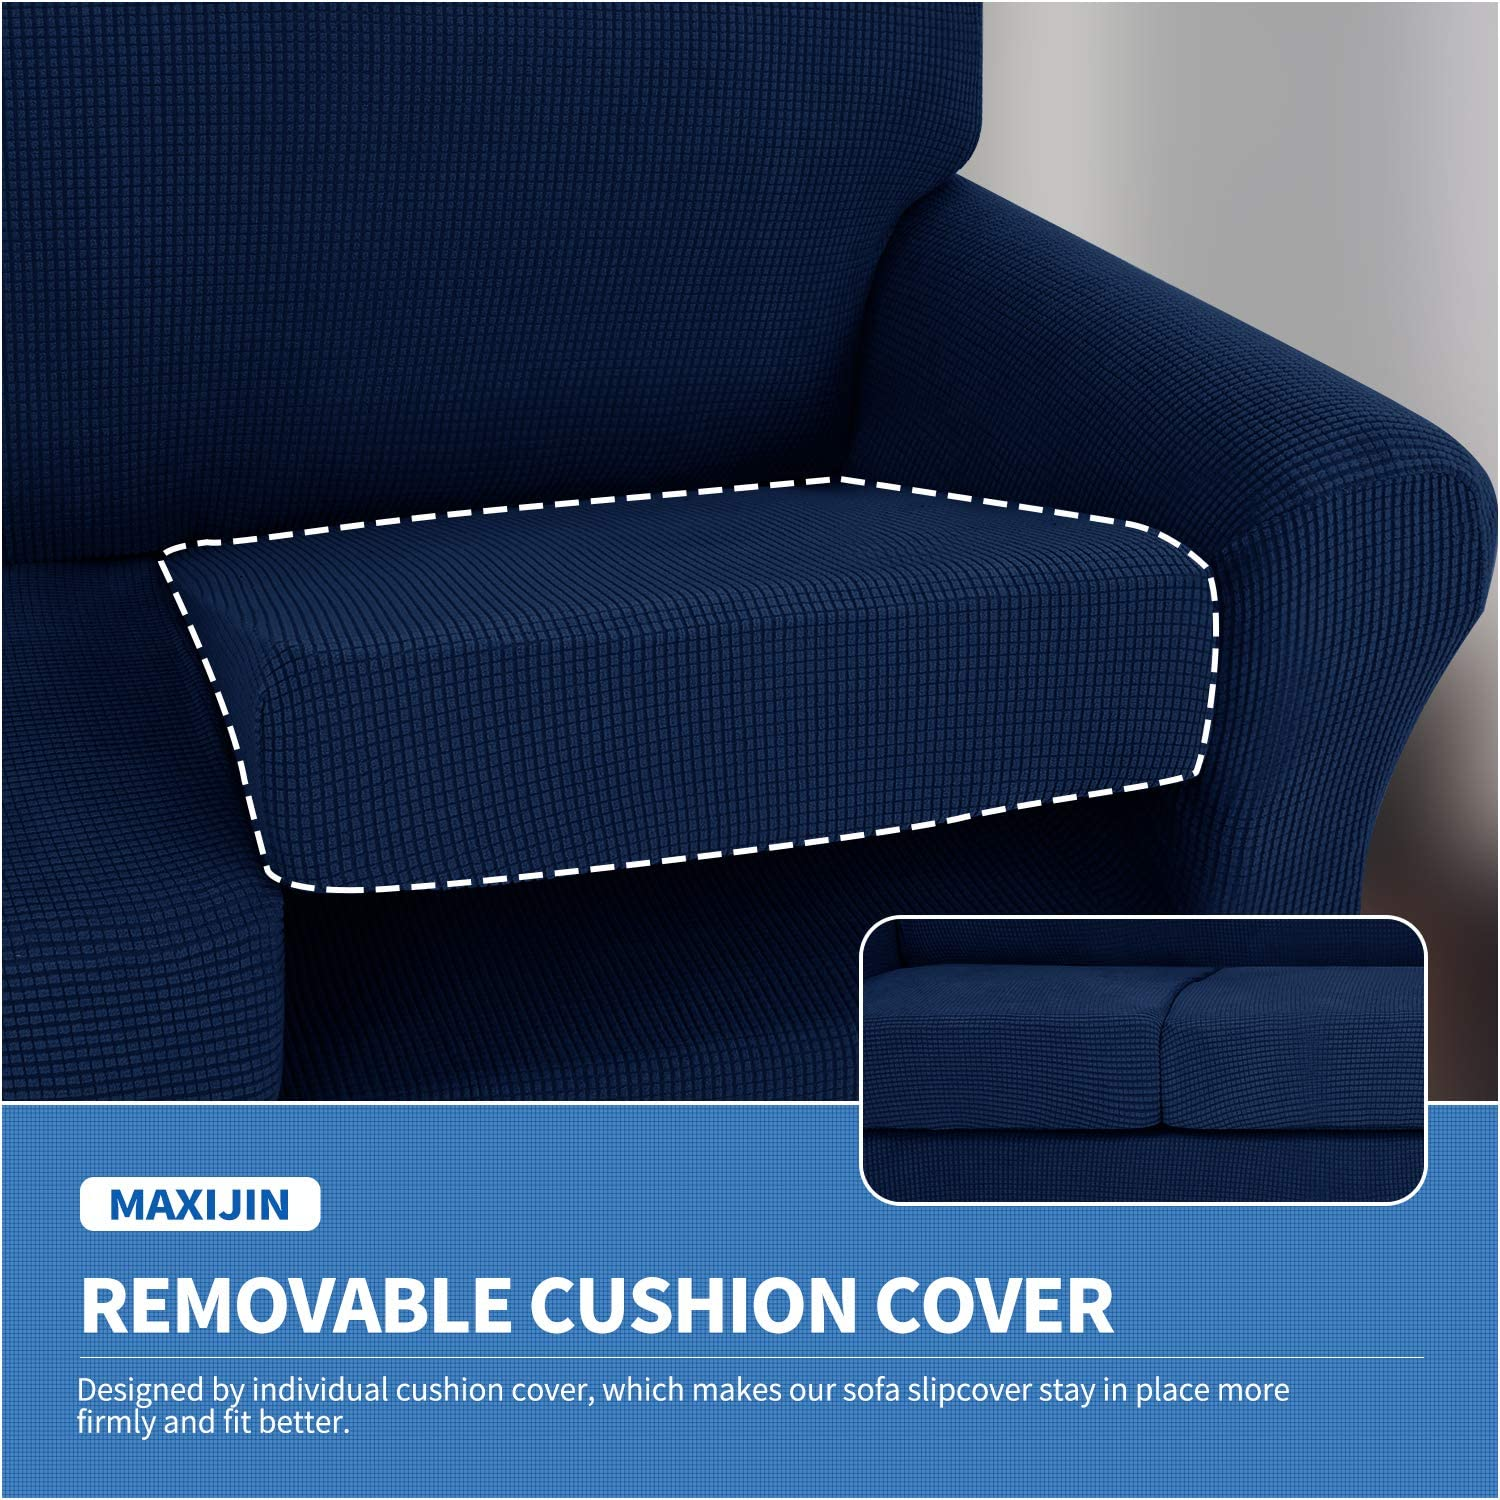 MAXIJIN 3 Piece Couch Covers for 2 Cushion Couch Super Stretch Loveseat Slipcover Dogs Pet Proof Fitted Furniture Protector Spandex Non Slip Sofa Love Seat Cover Washable Loveseat, Black